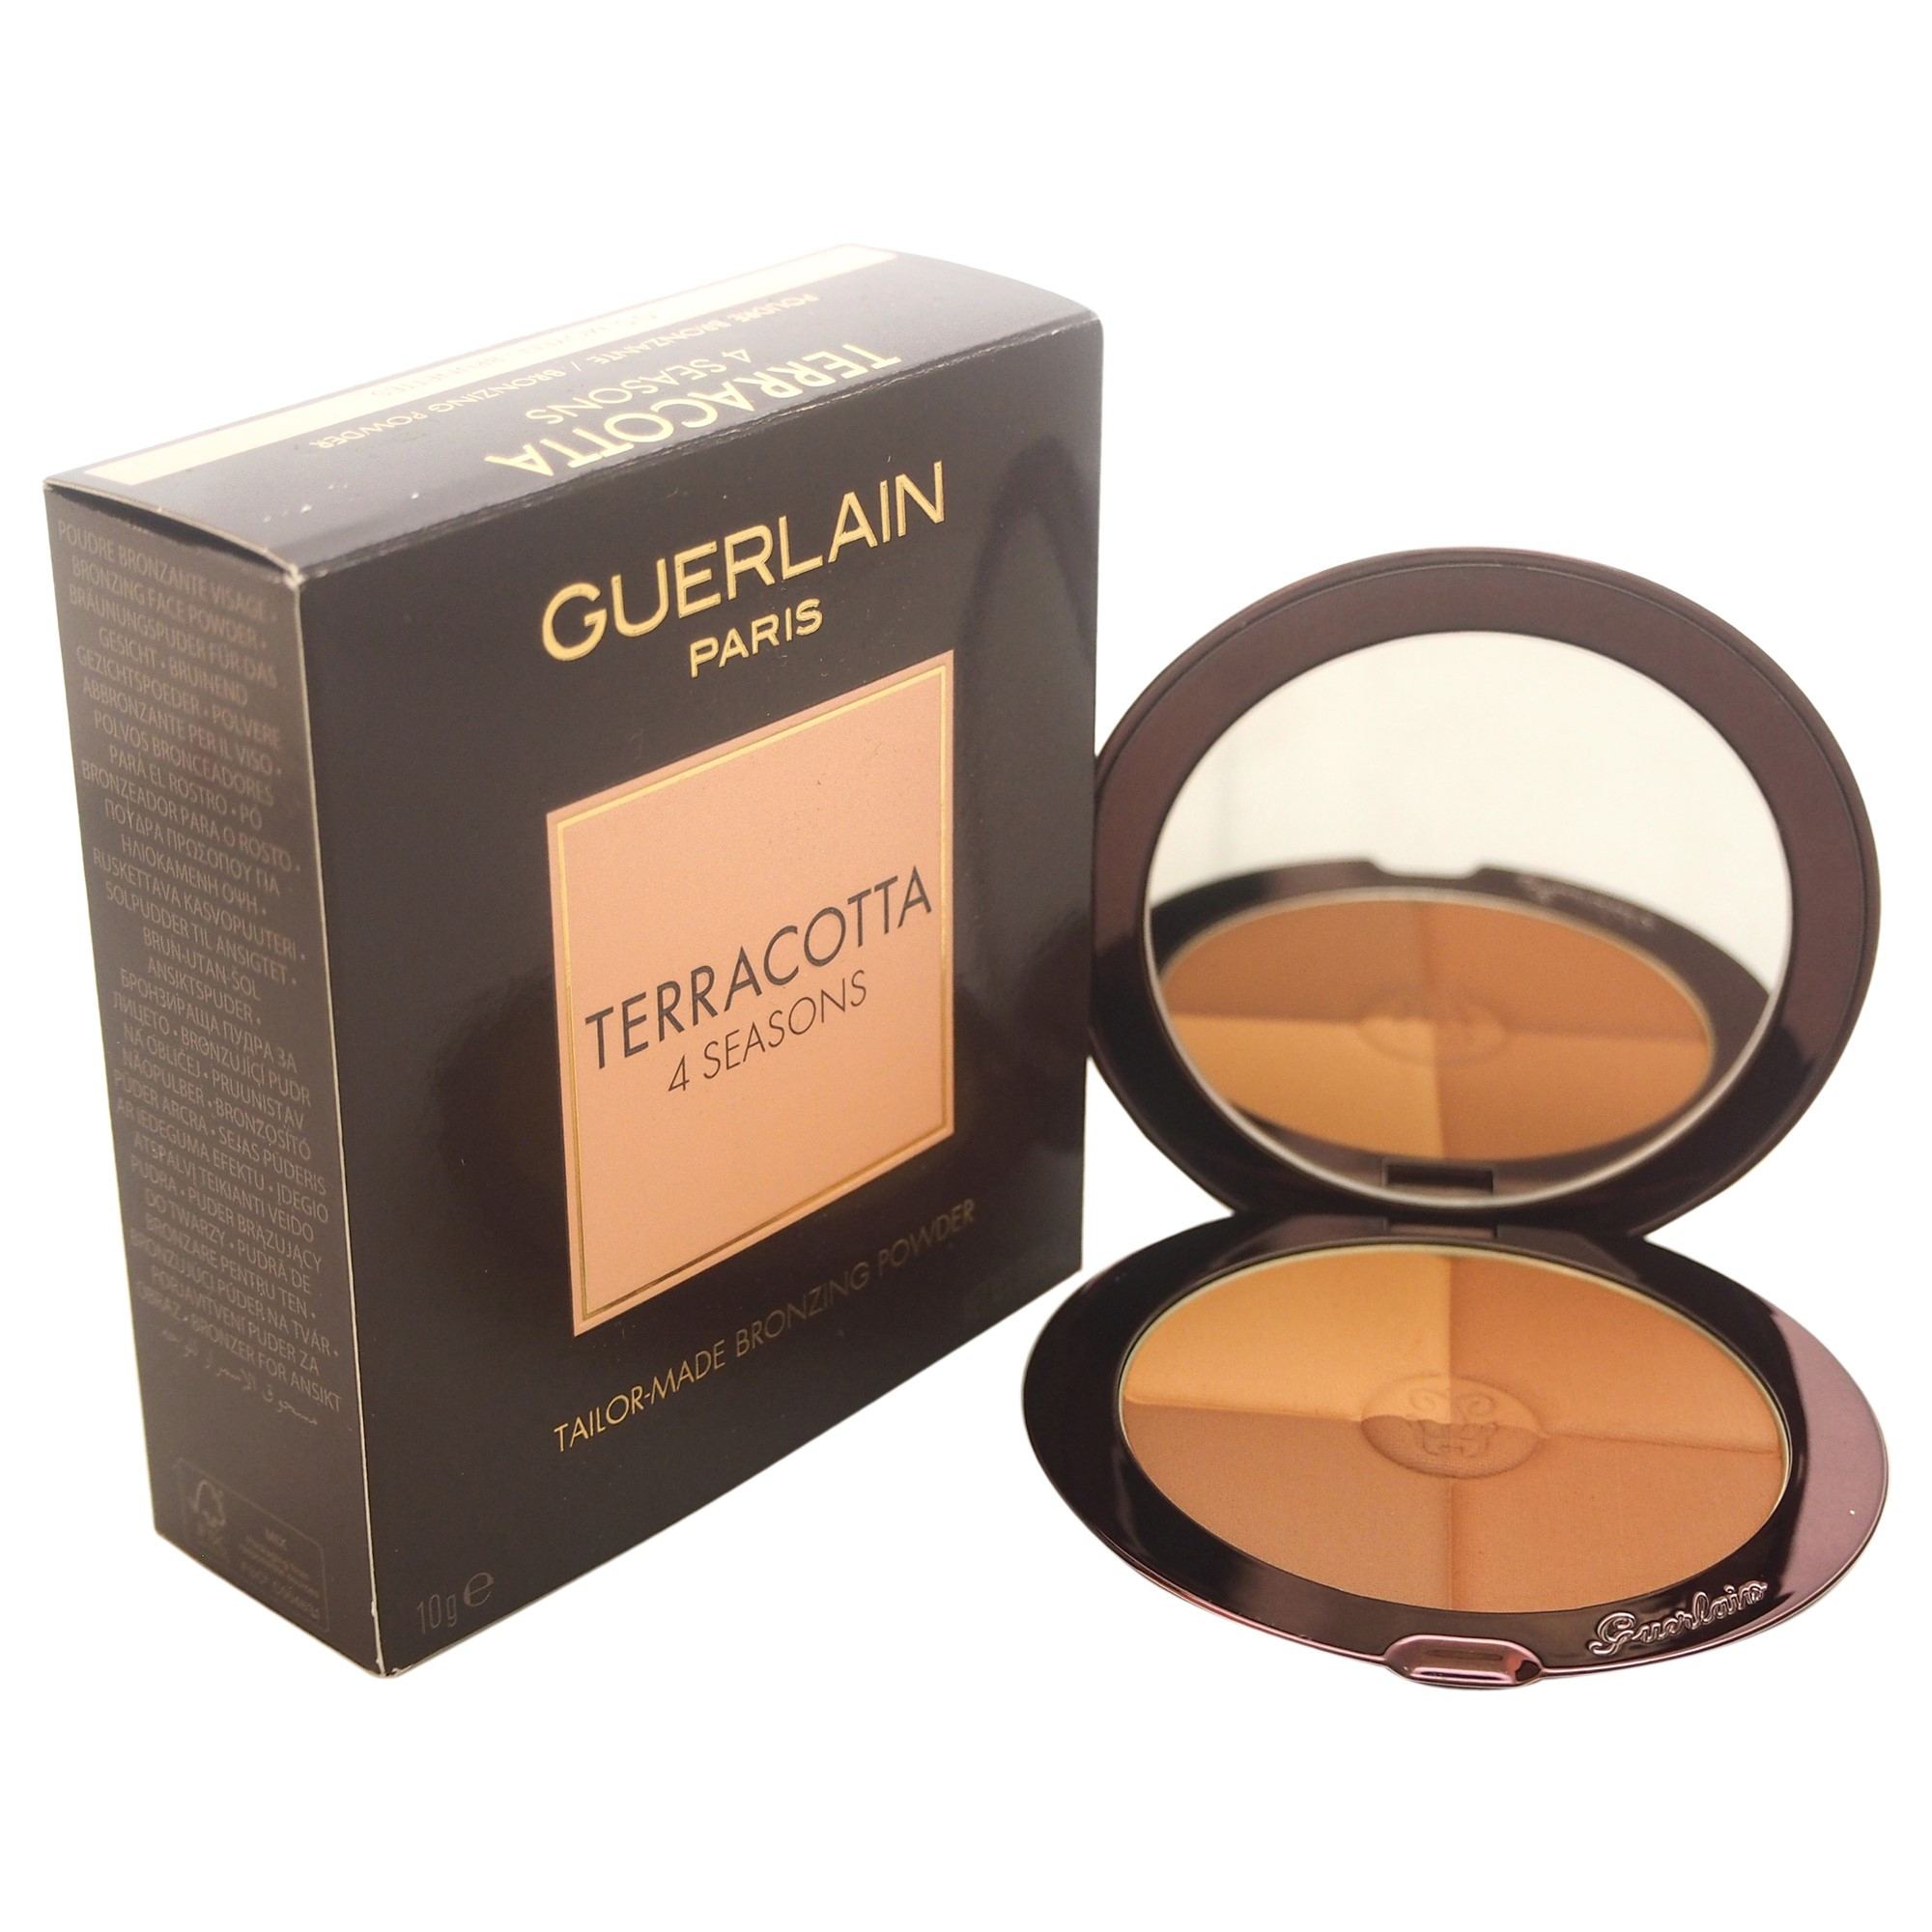 Guerlain Terracotta 4 Seasons Contour and Bronzing Powder with SPF 10, 05 Moyen Brunettes, 0.35 Oz